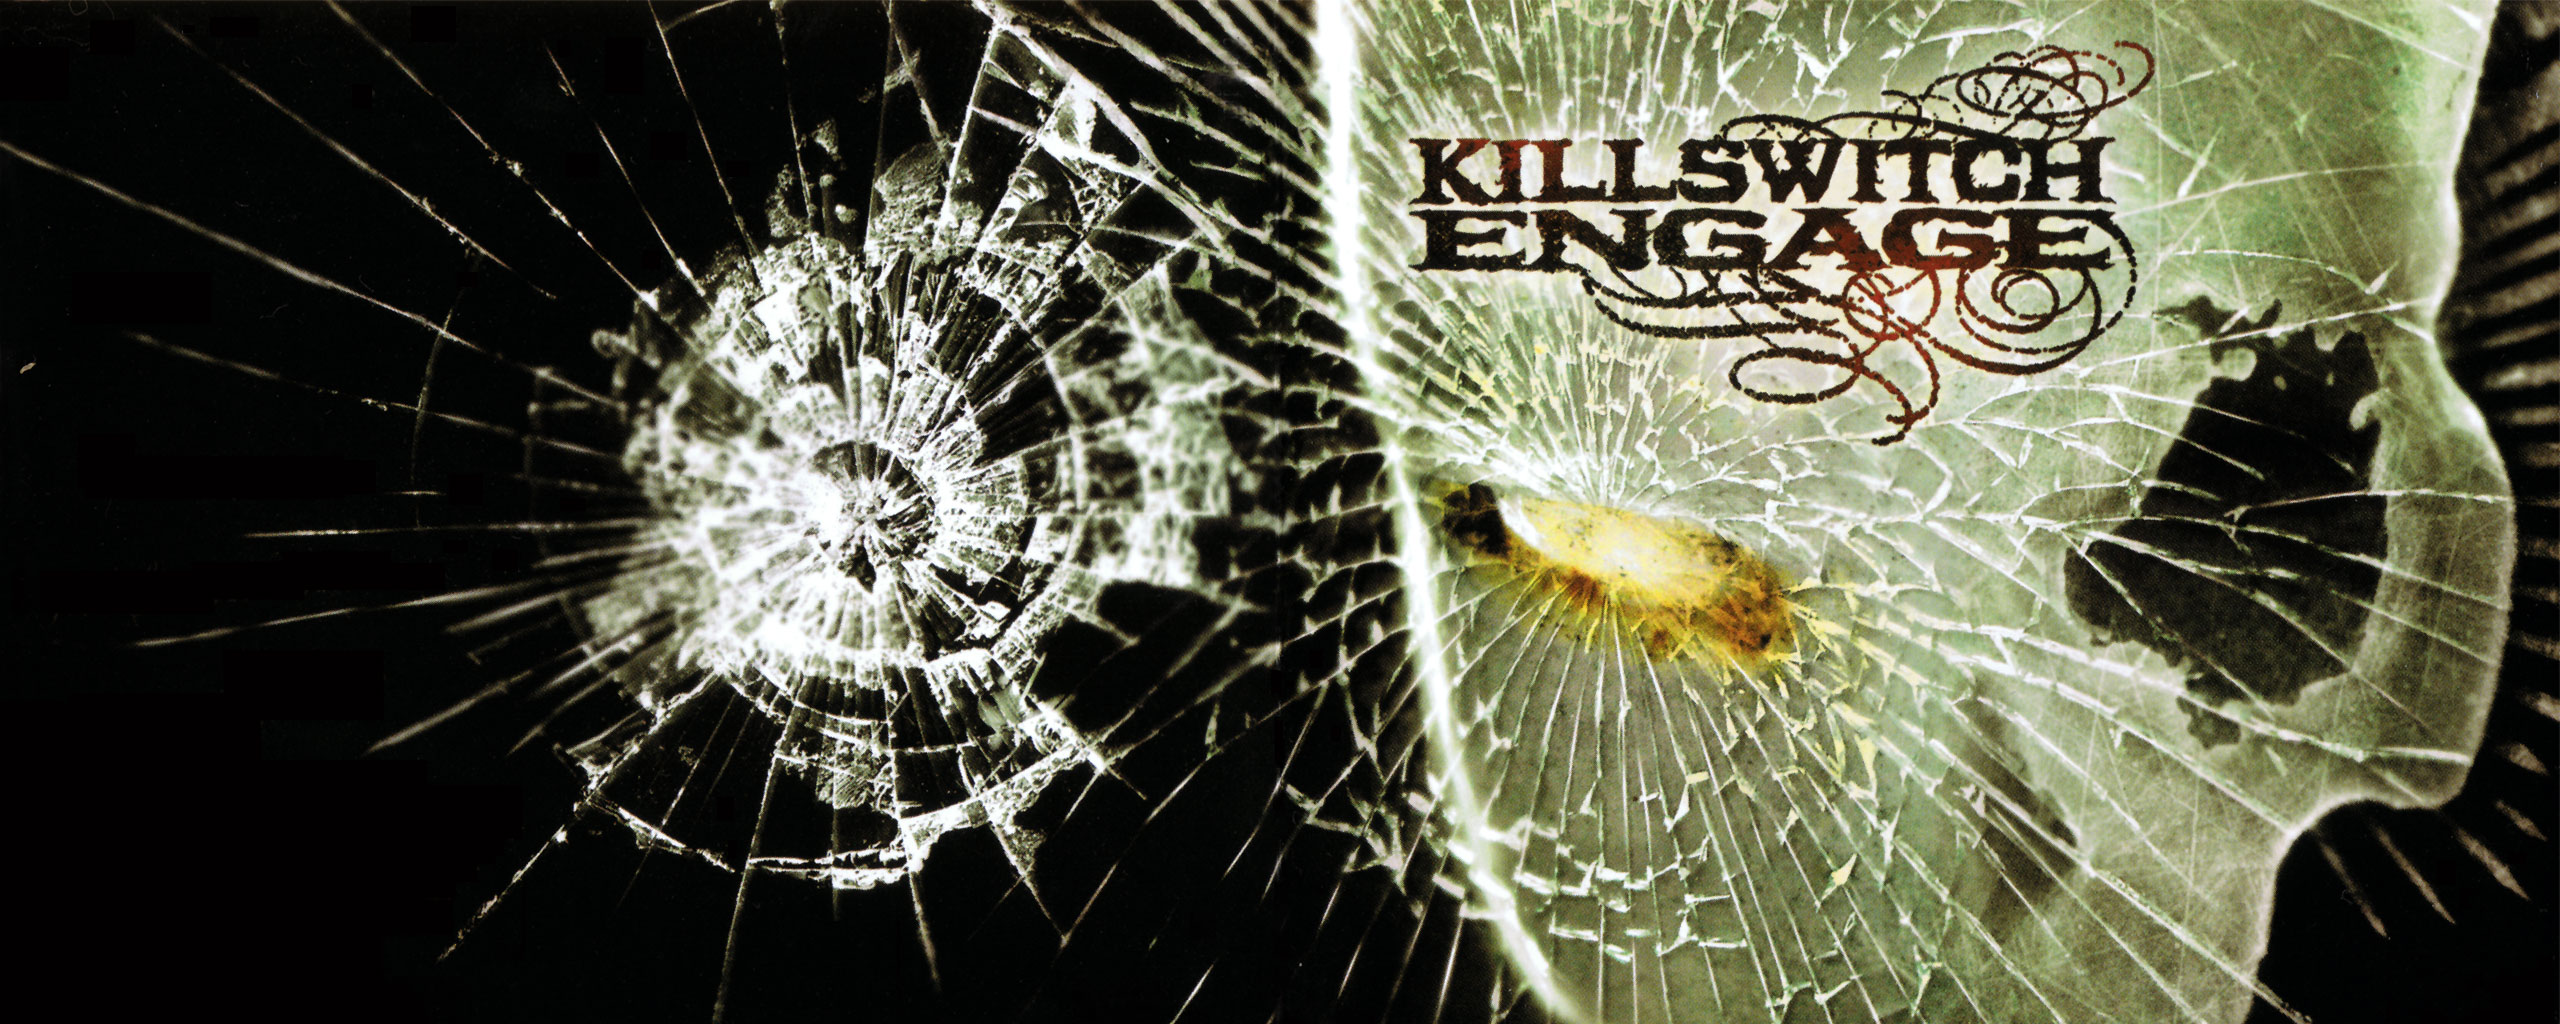 12 Killswitch Engage HD Wallpapers Background Images   Wallpaper 2560x1024